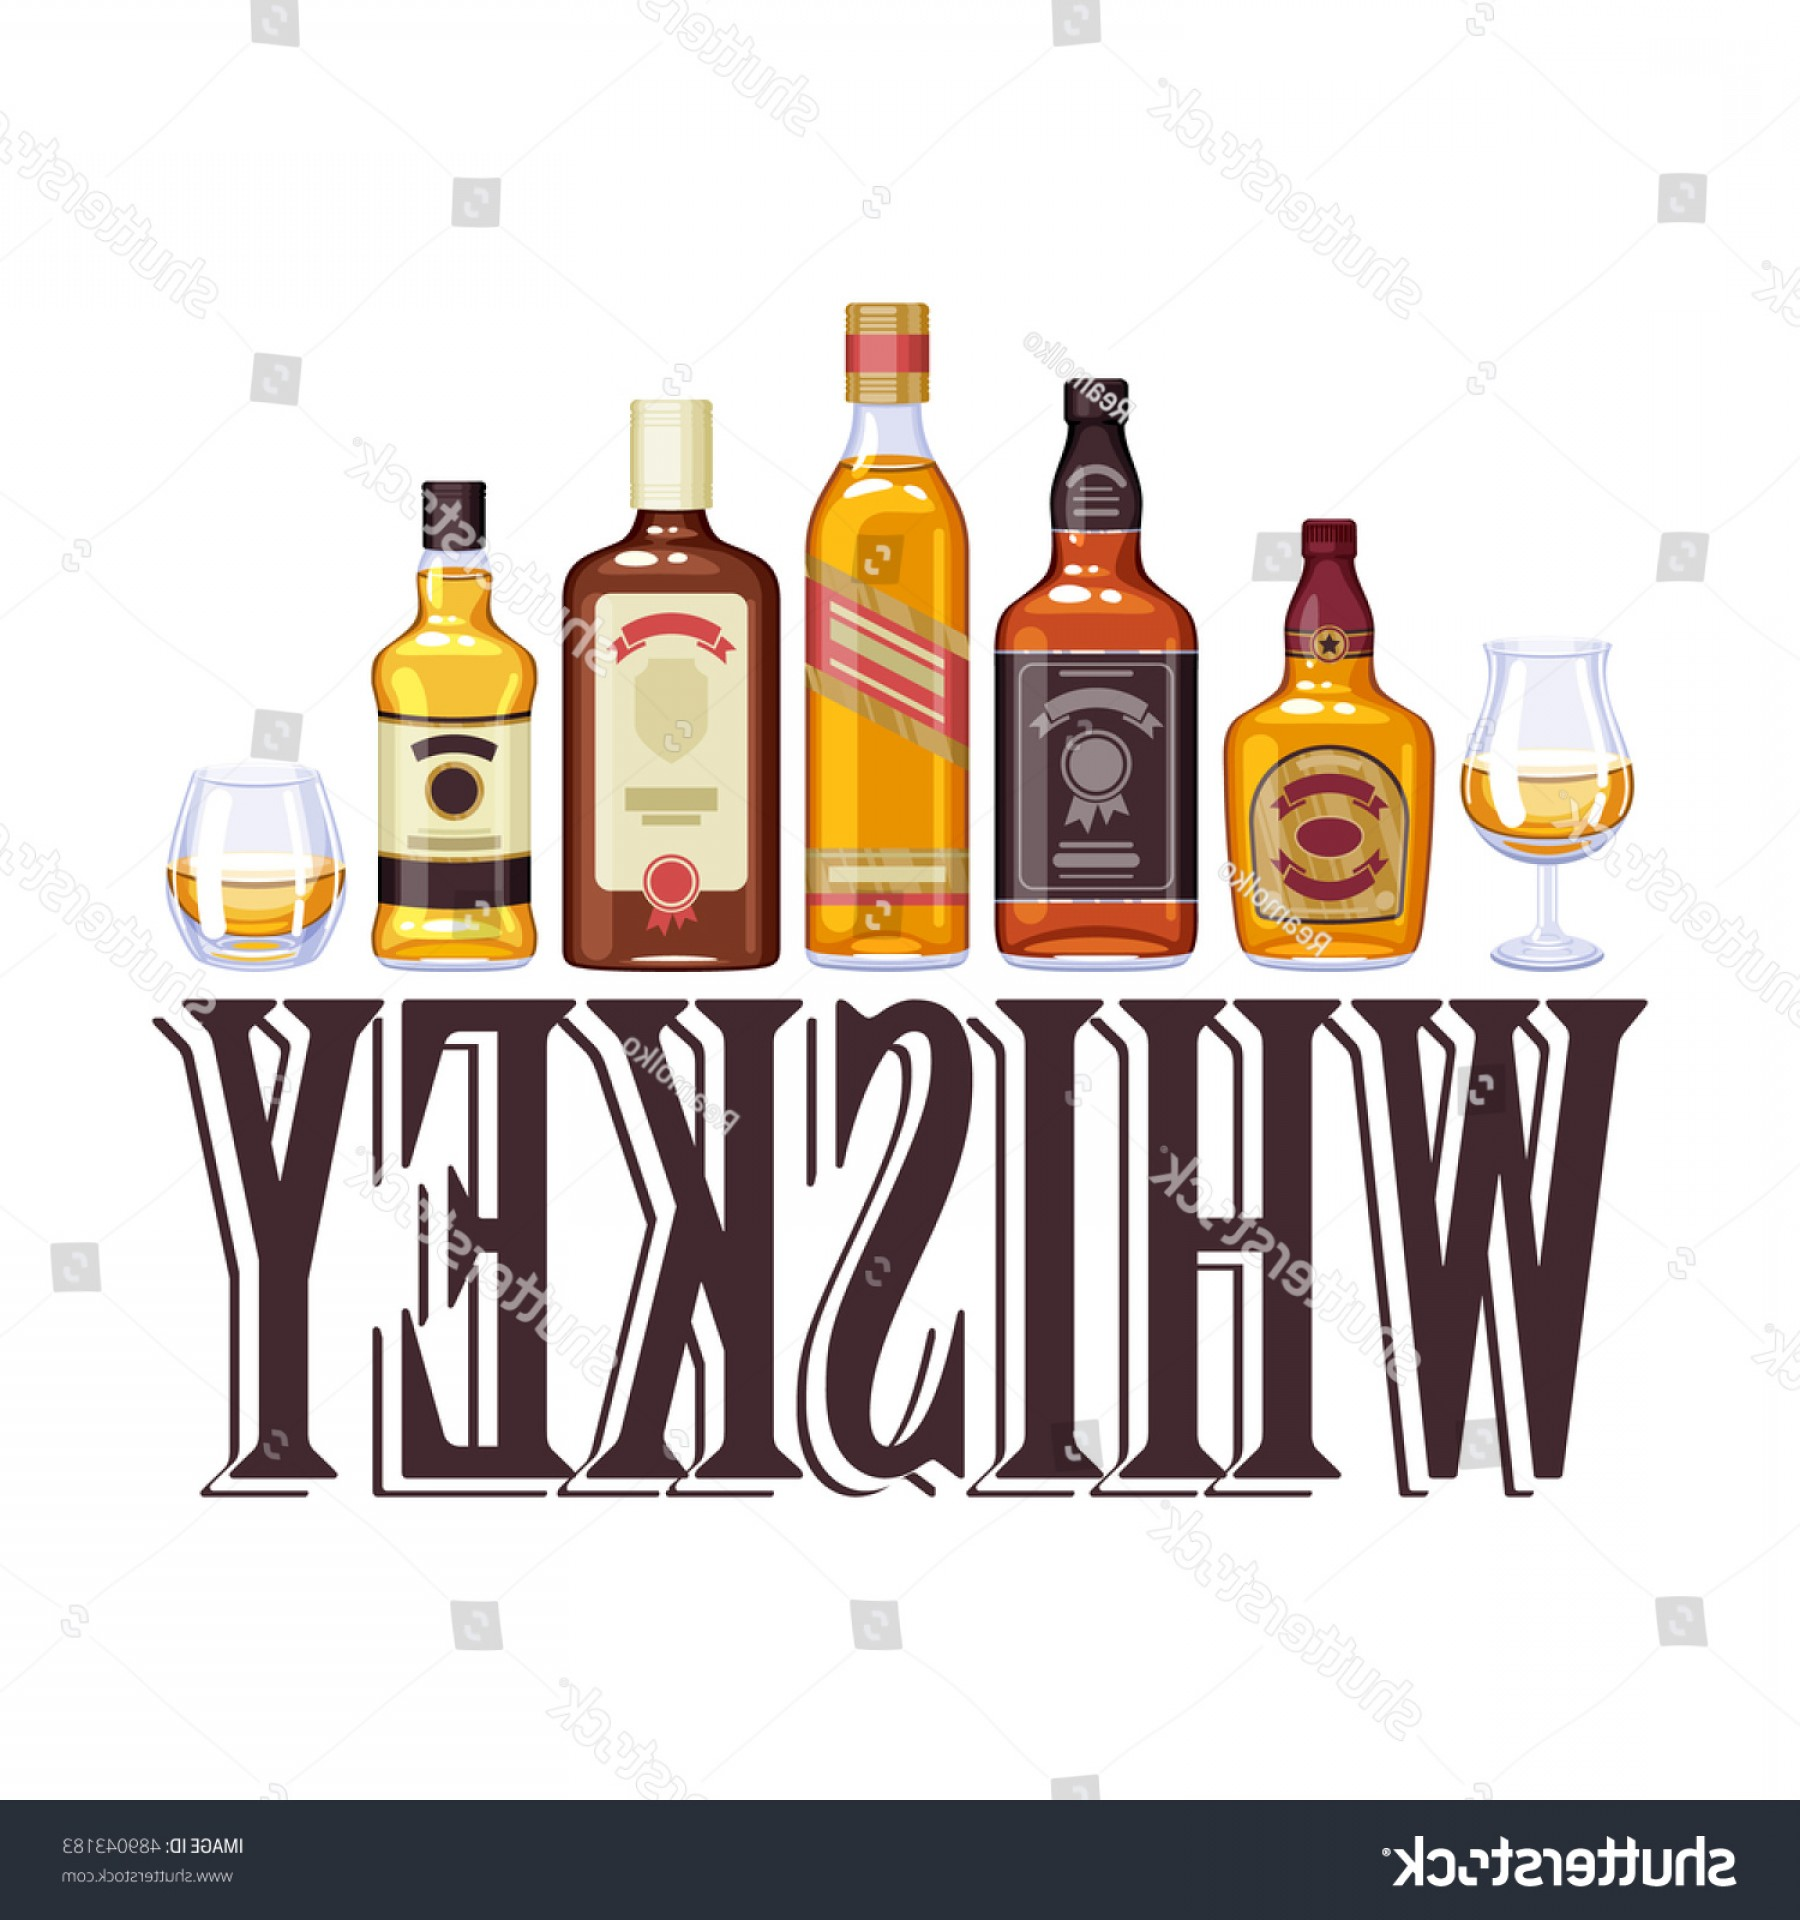 Alcohol Vector: Whisky Bottles Glasses Alcohol Vector Illustration